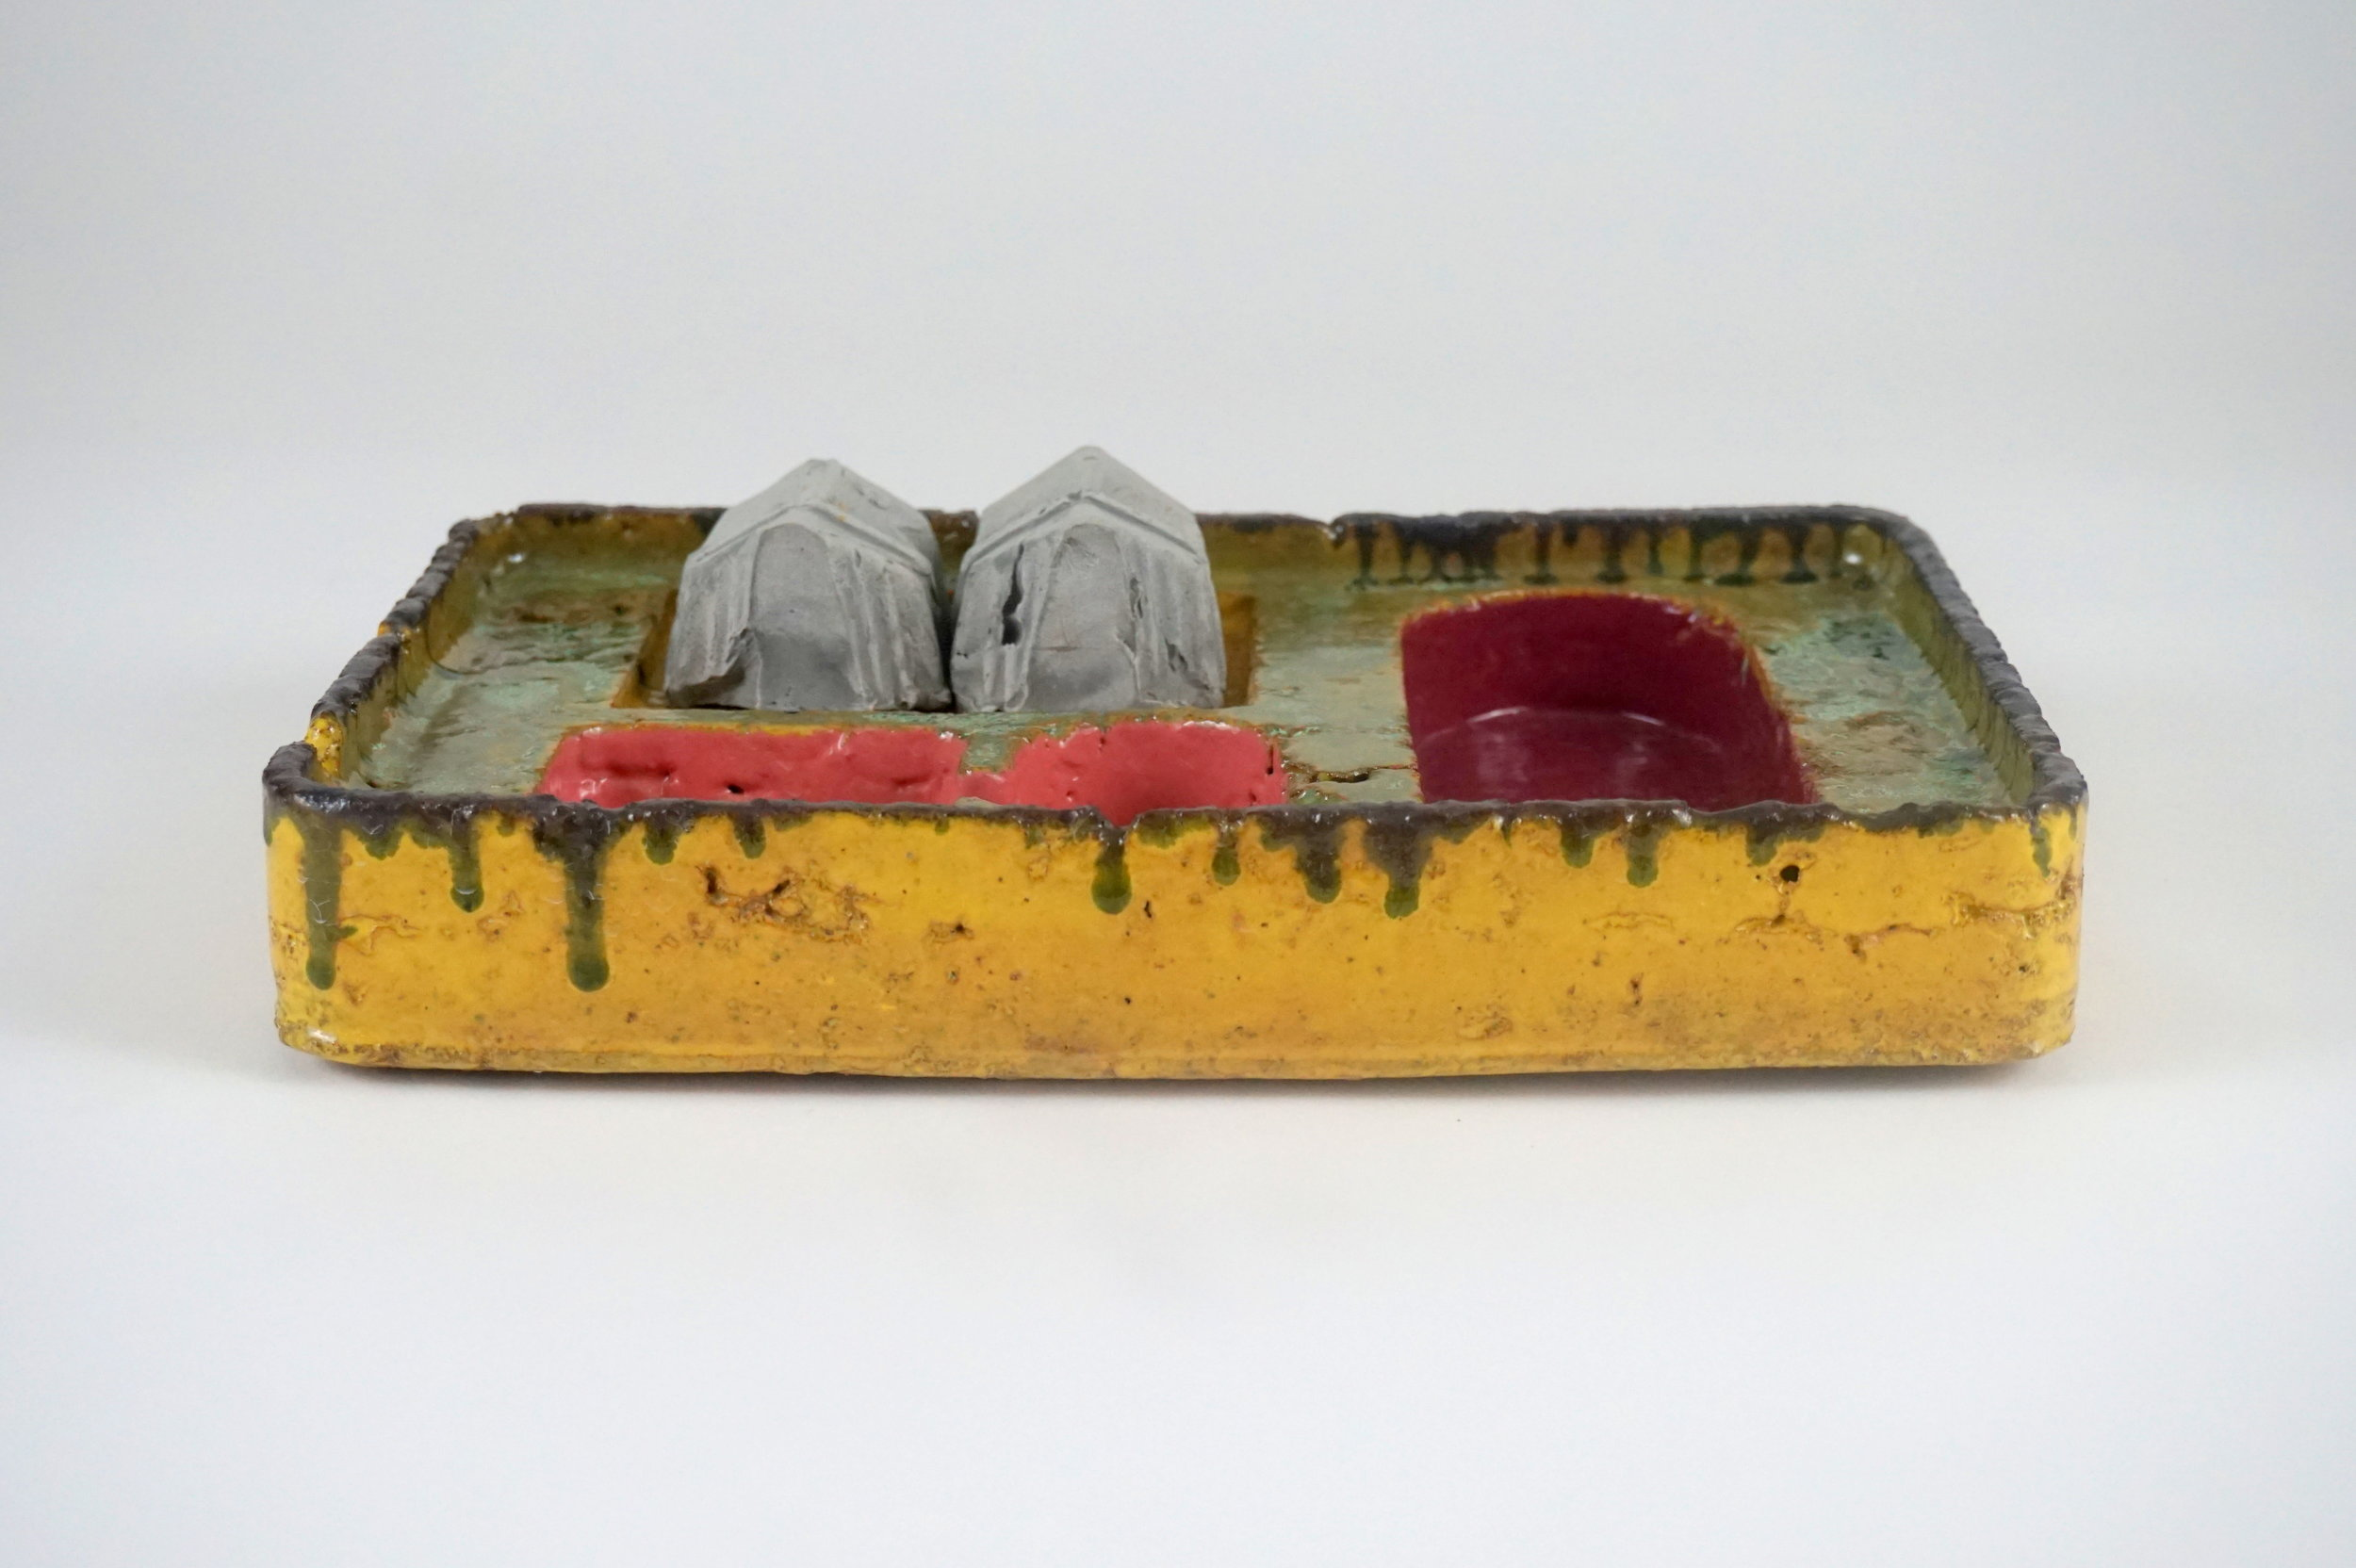 Pig Farm Desk OrganizerPig Farm Desk Organizer - 12.5 x 9 x 3reclaimed earthenware brick clay, waste glazes, reclaimed stained casting slipWith removable Pig Shed Paperweights